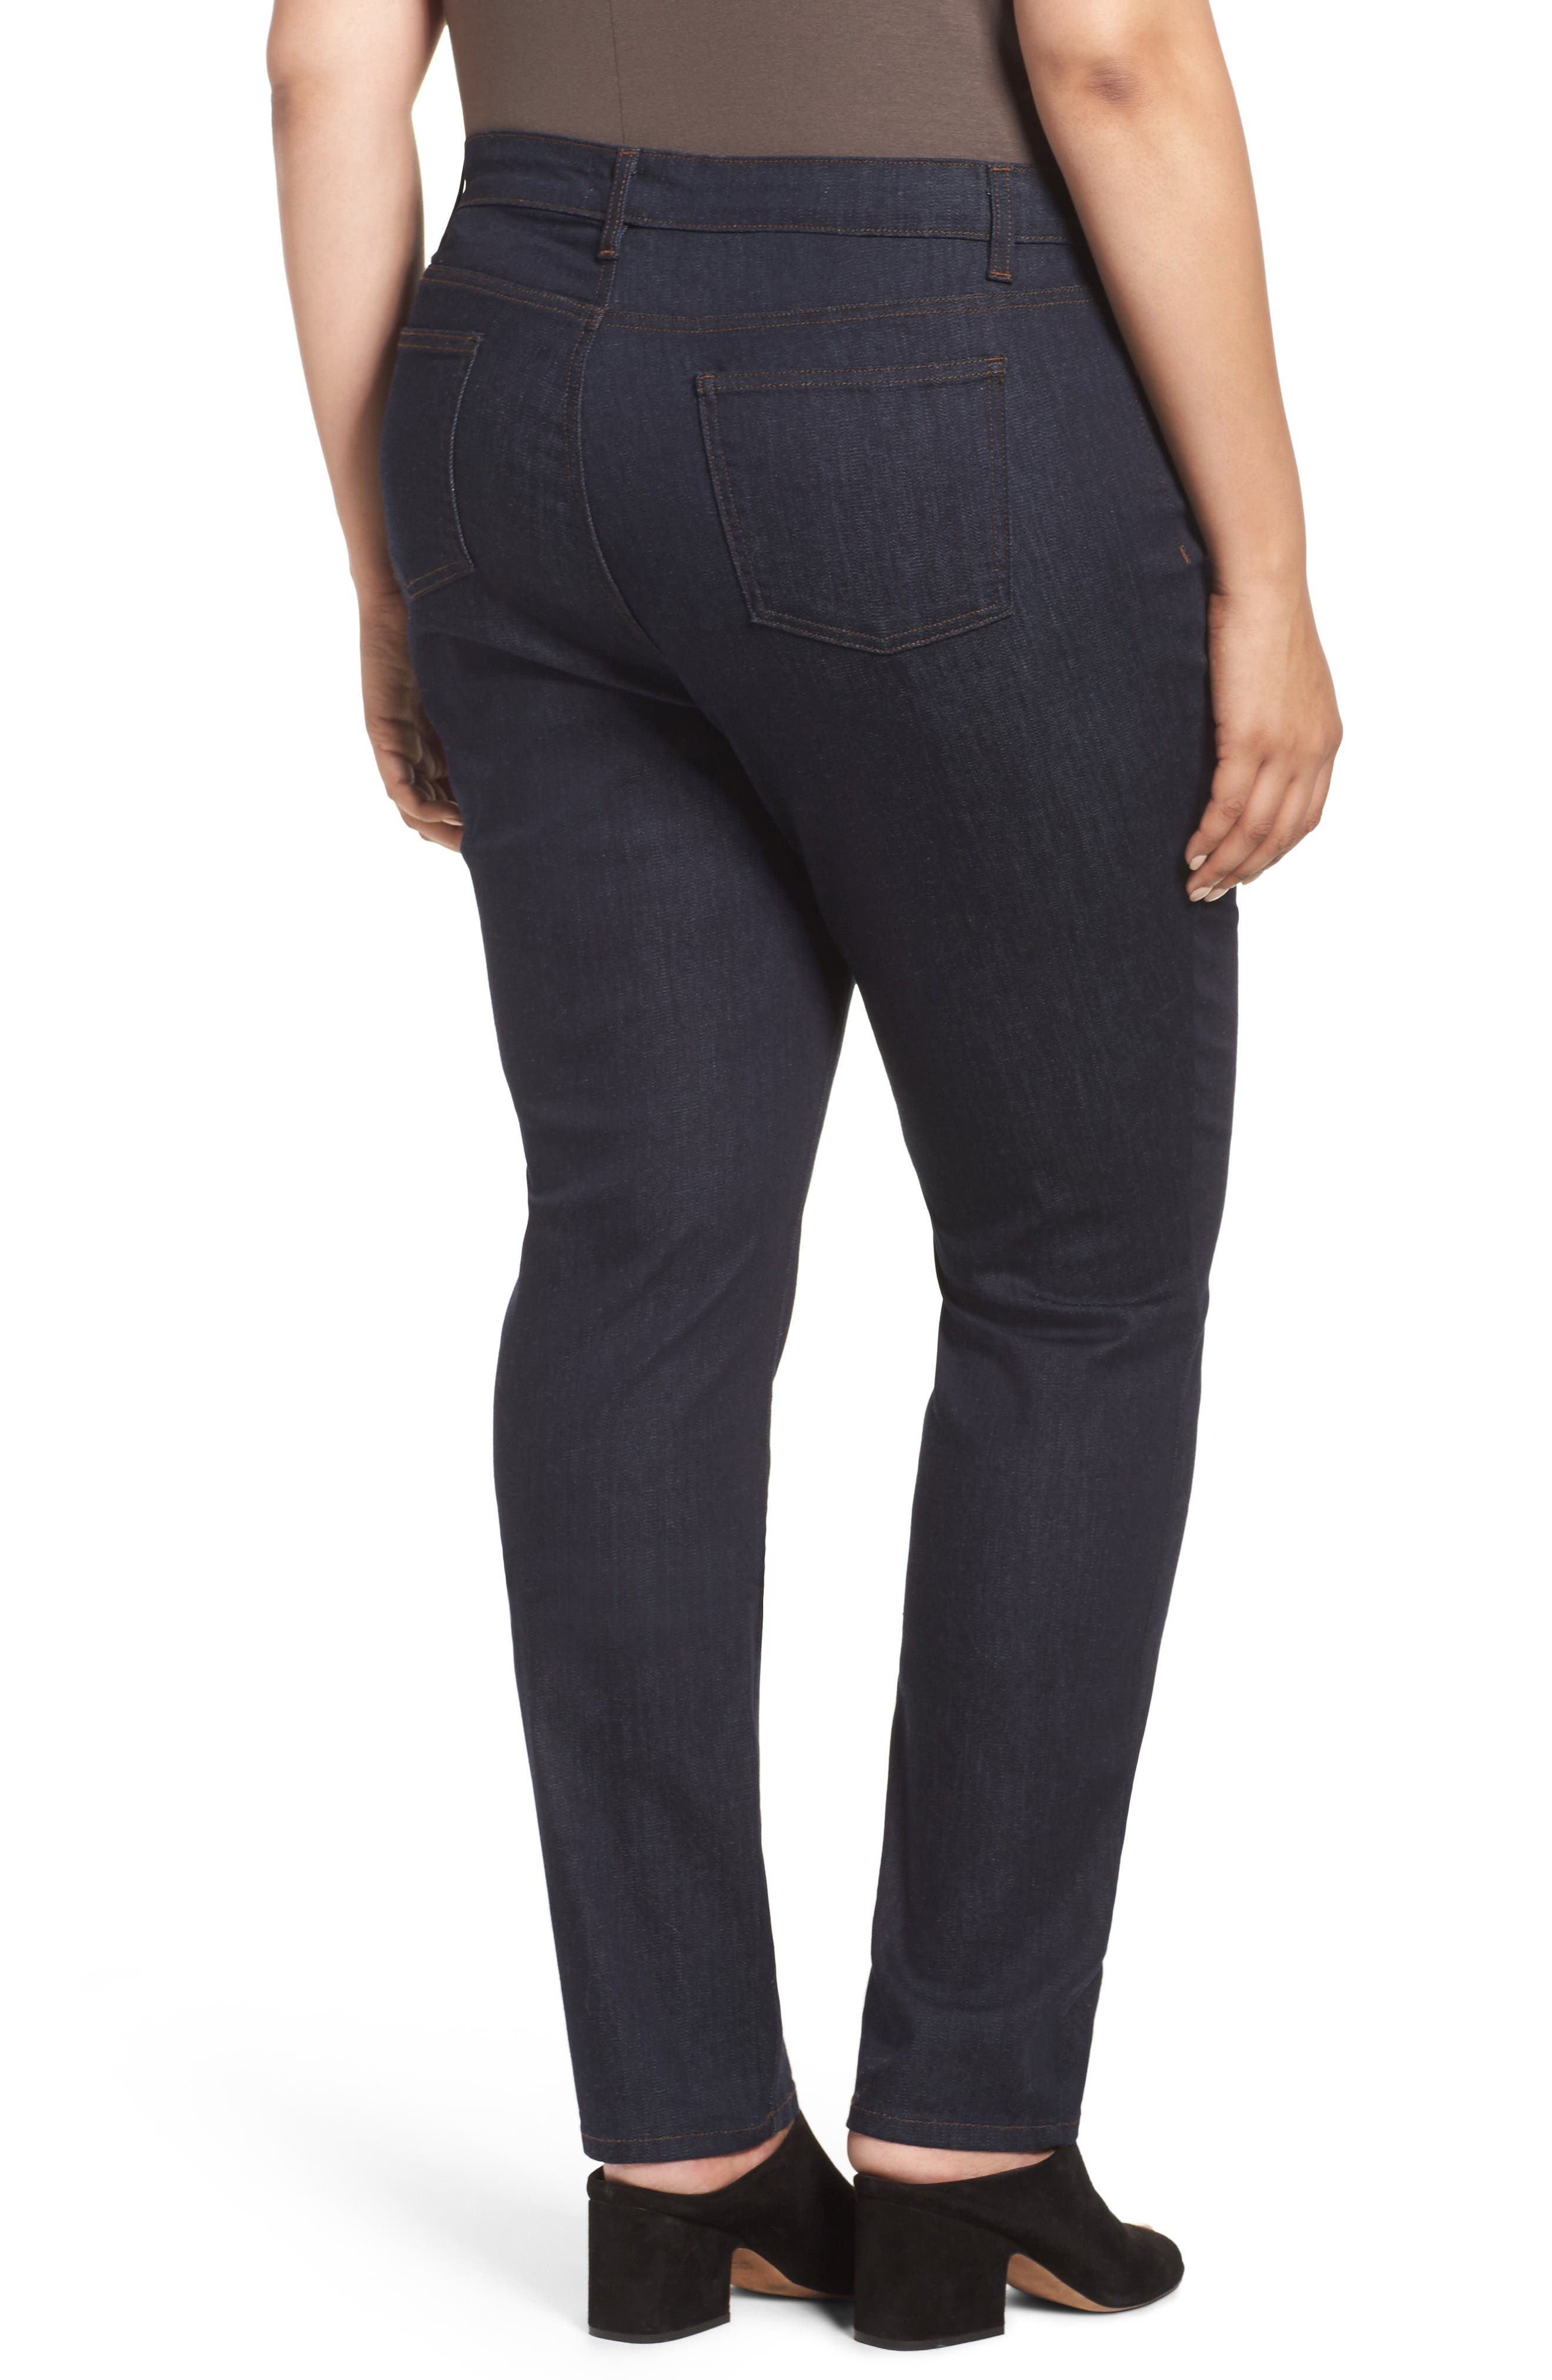 Organic Cotton Stretch Skinny Jeans,                             Alternate thumbnail 2, color,                             402